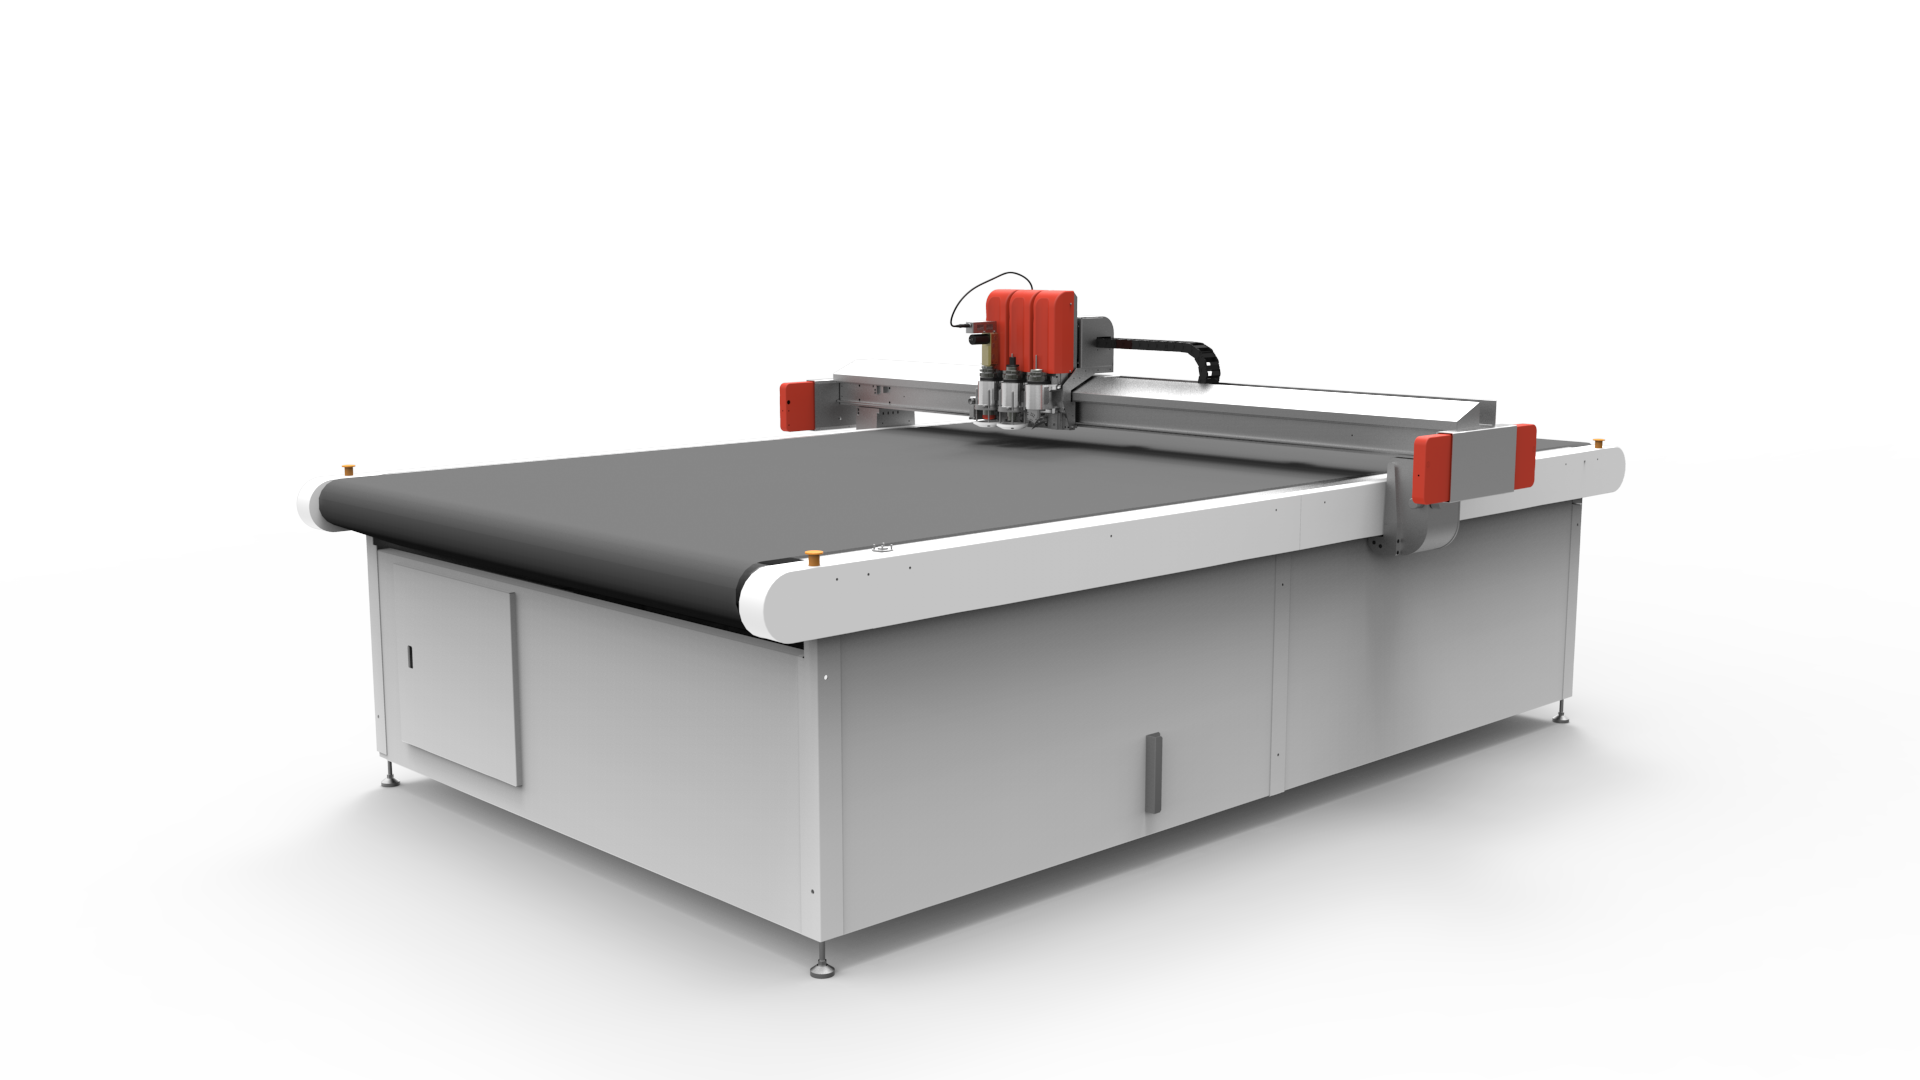 Flatbed Digital Cutter Cutting Plotter Exapro